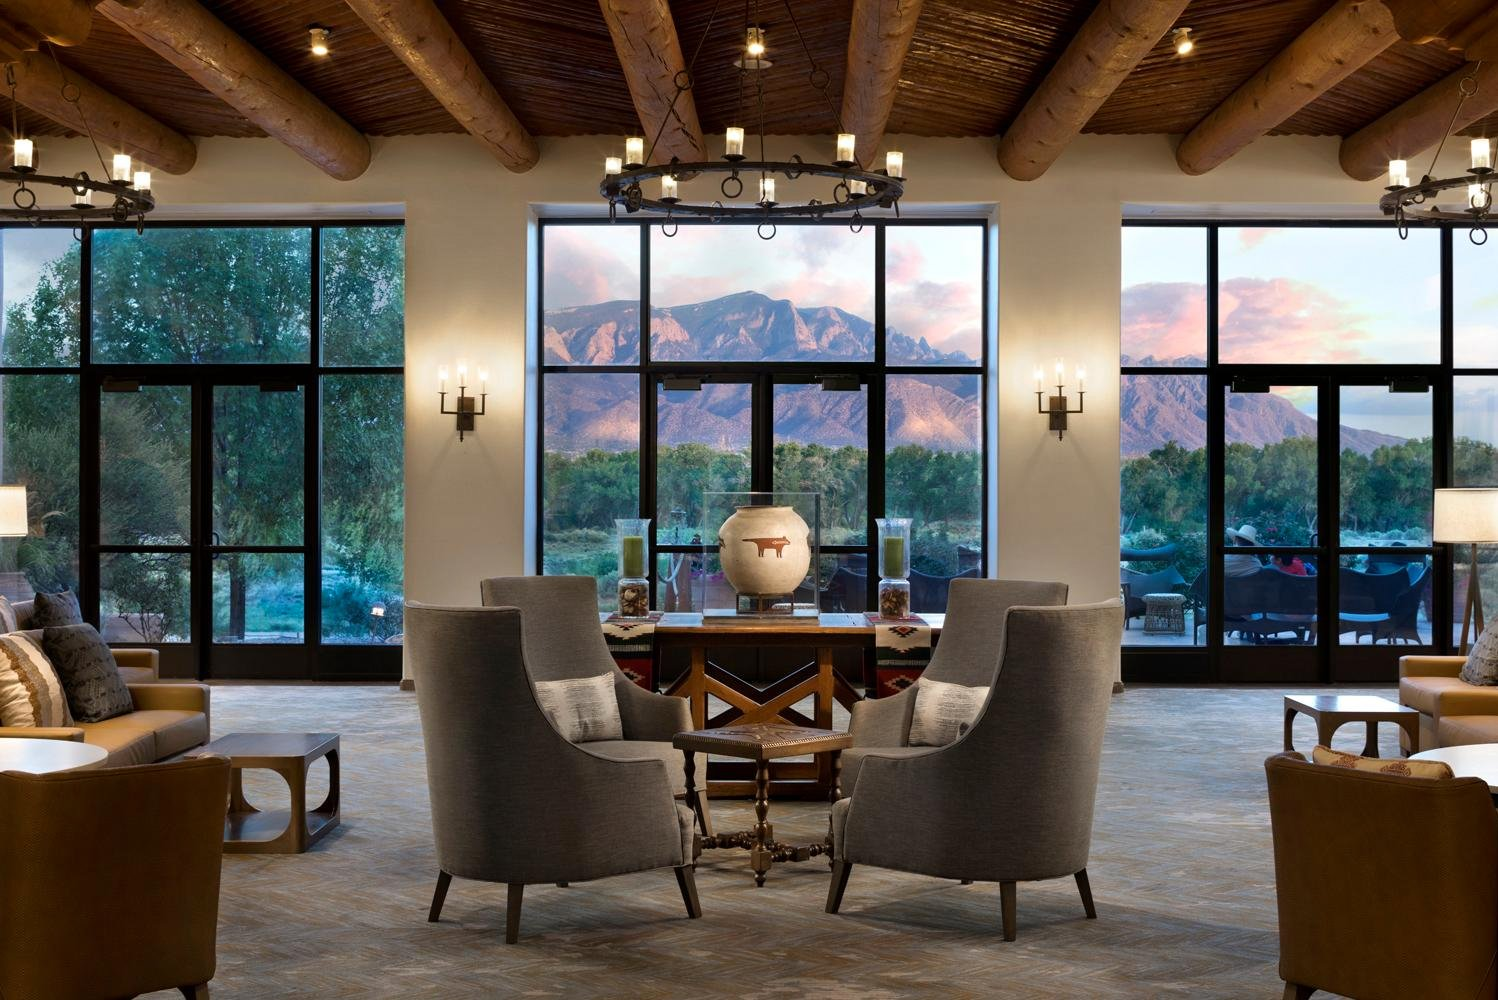 Hyatt Regency Tamaya Resort & Spa completed a $2.5 million renovation to its reception, living room and public spaces.